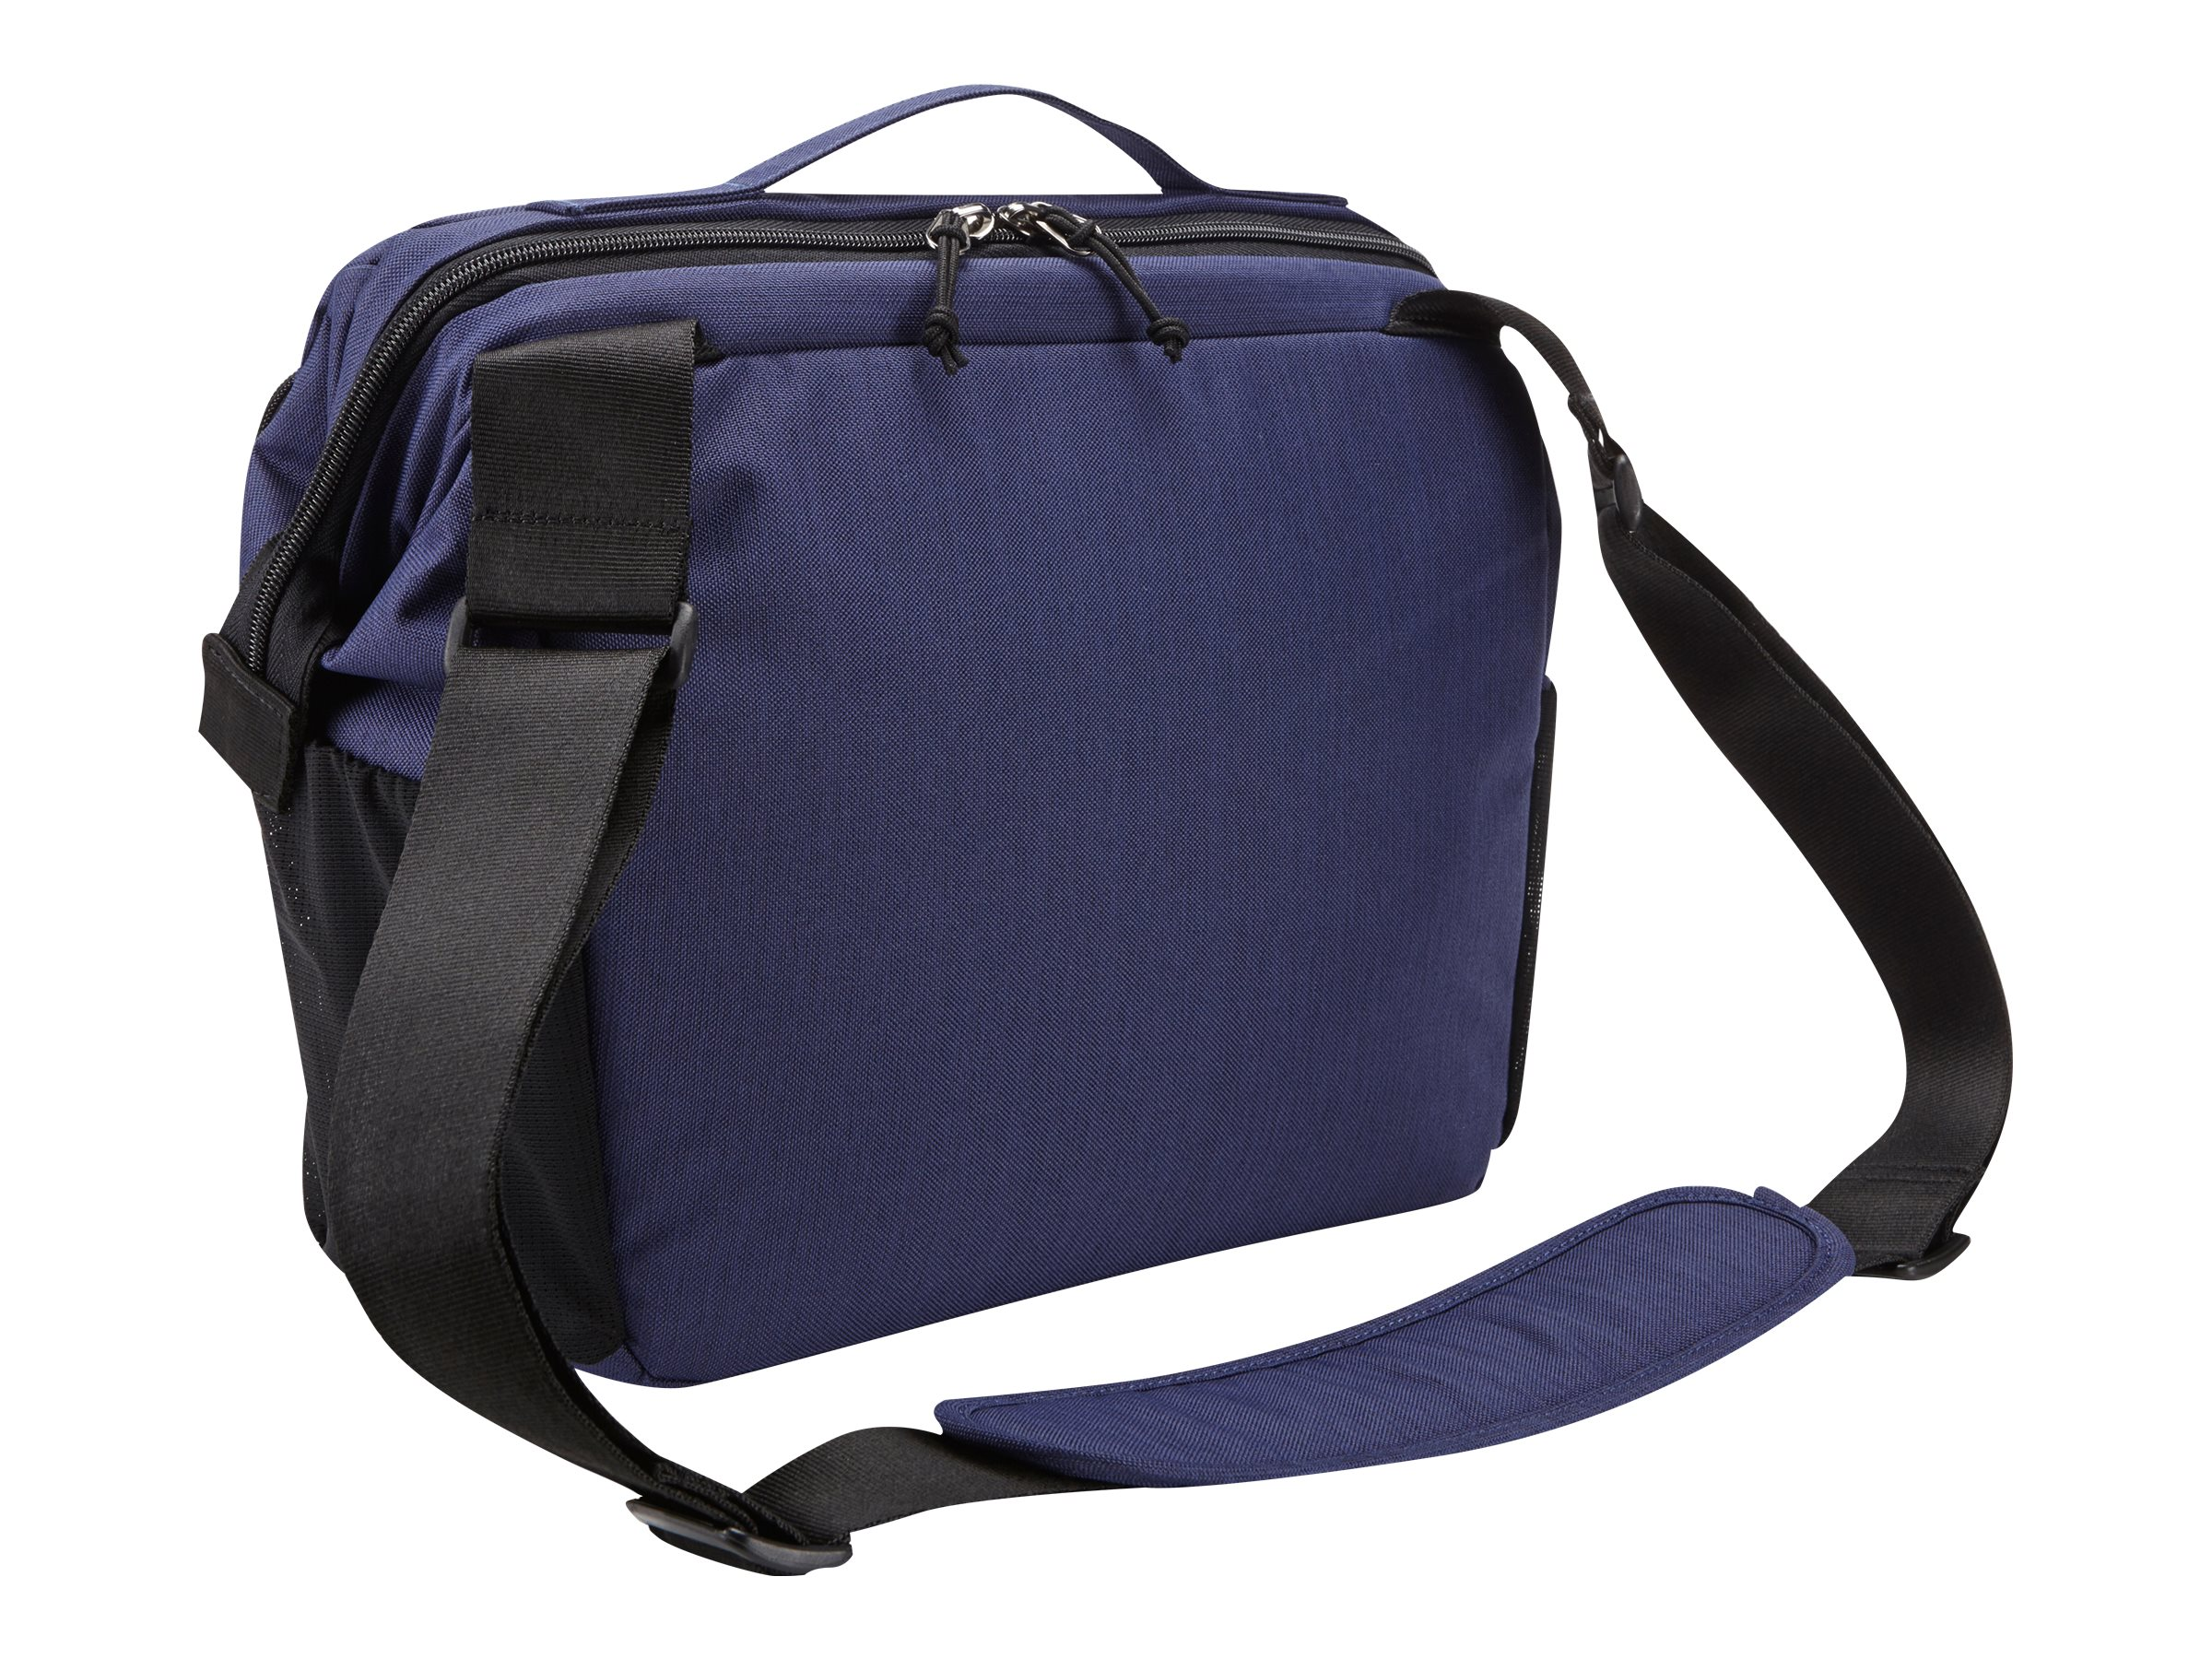 Case Logic Reflexion DSLR Medium Shoulder Bag, Indigo, FLXM202INDIGO